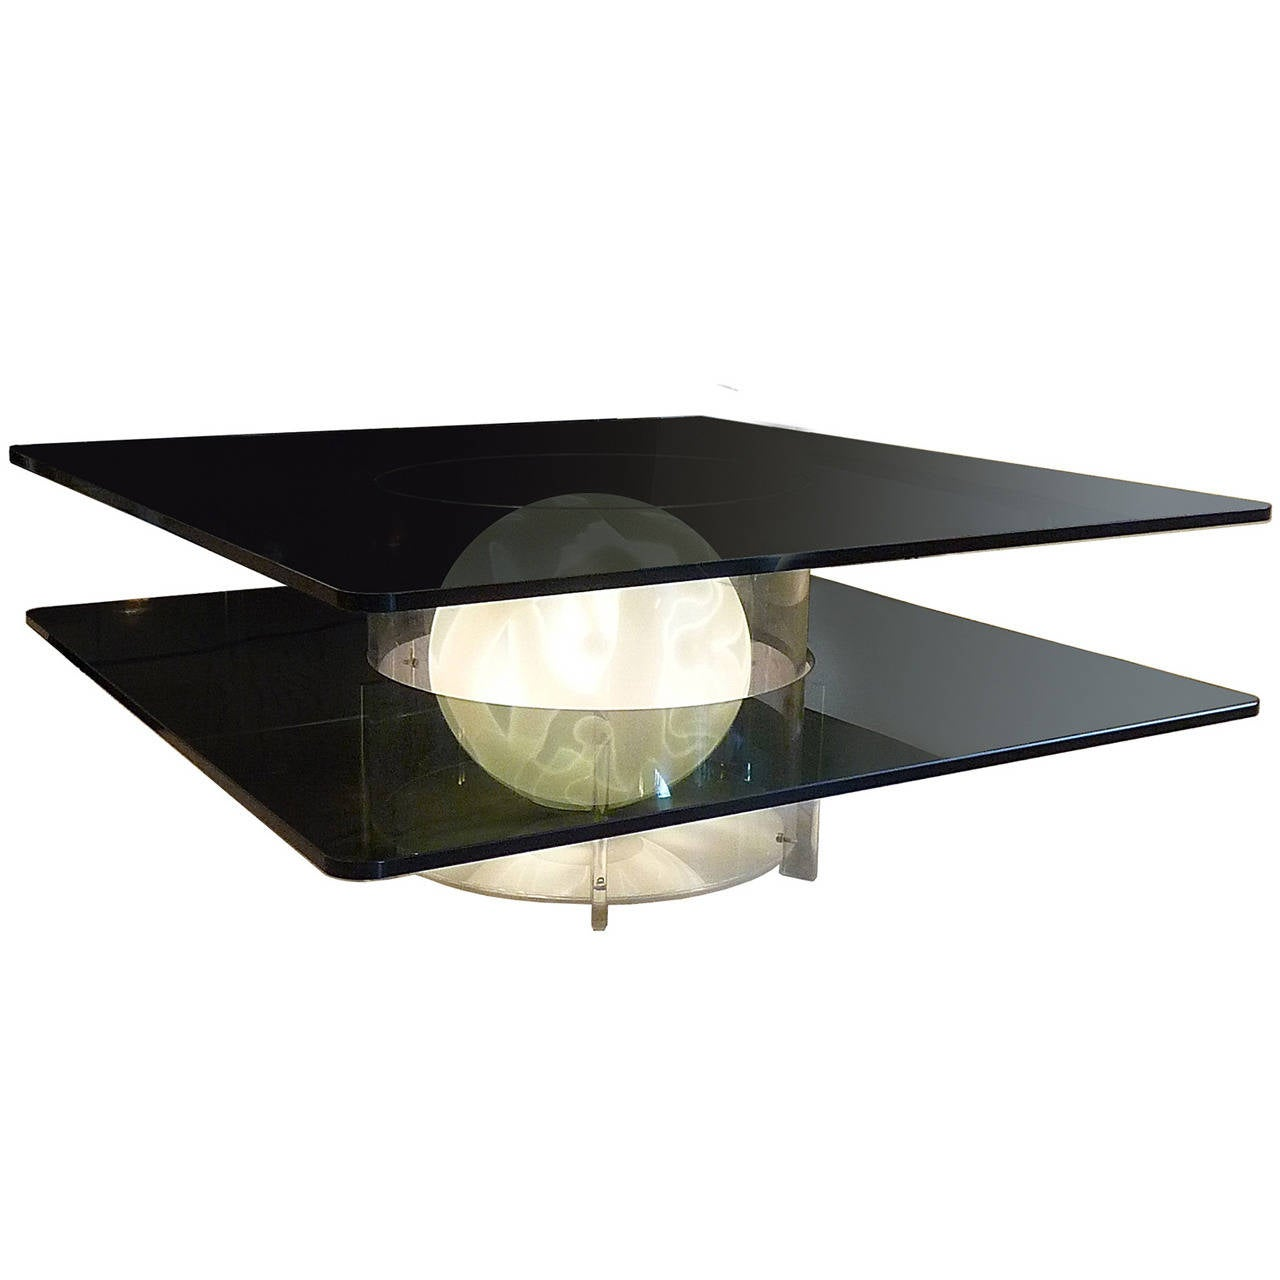 Unique Murano Illuminated Coffee Table For Sale At 1stdibs